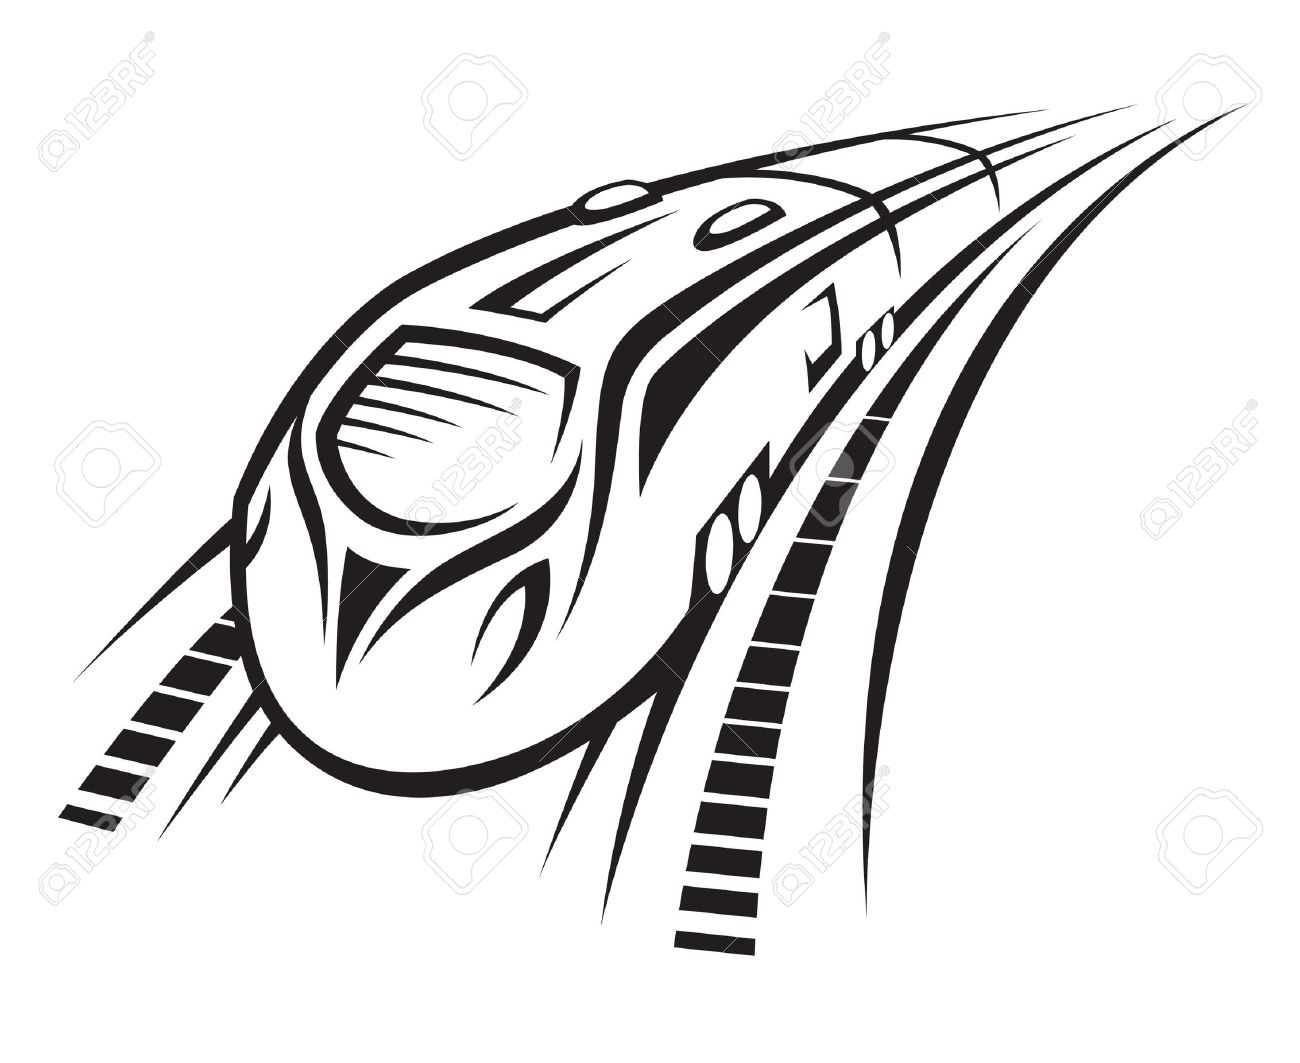 1300x1063 Drawn Train Railway Line